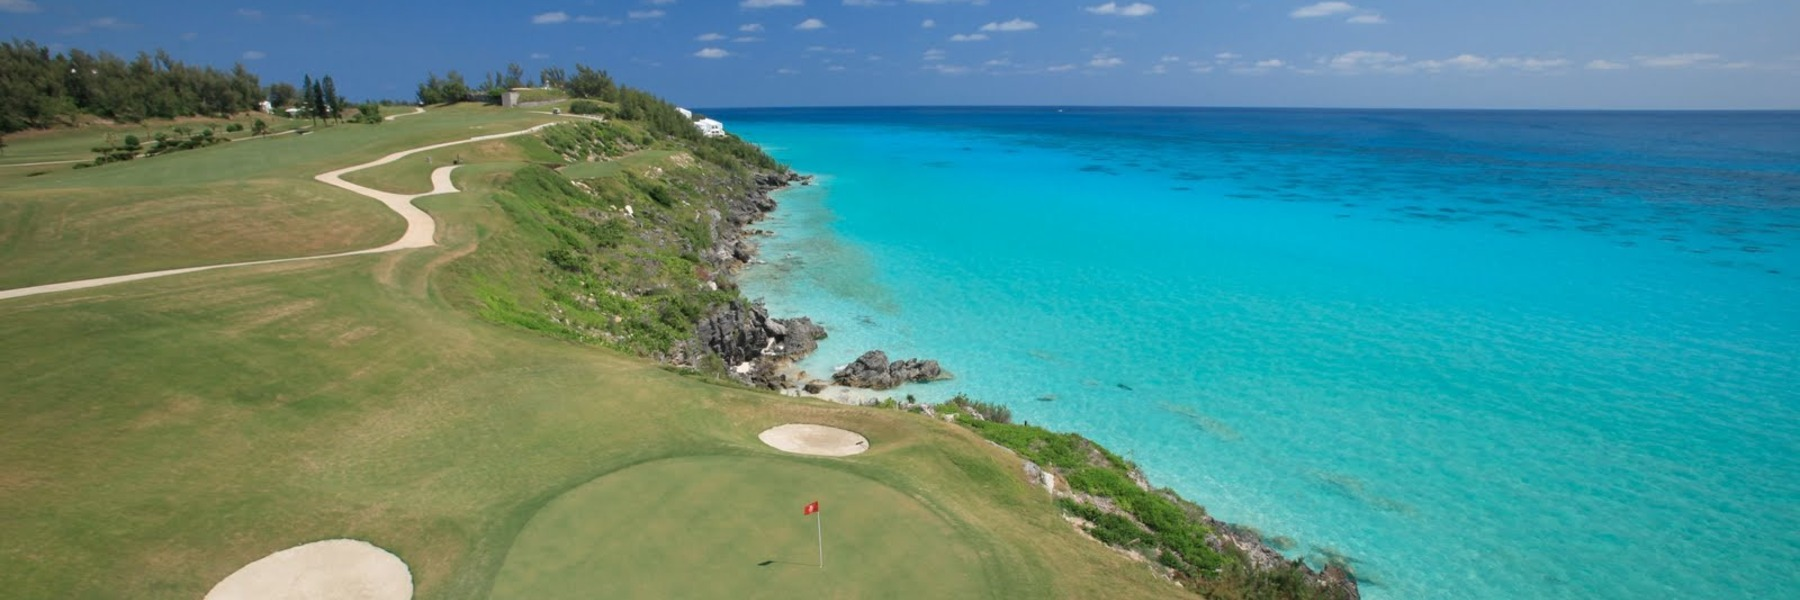 Golf Vacation Package - Colors of Bermuda UNLIMITED GOLF Stay & Play at Coco Reef Beach Resort for $197 per day!